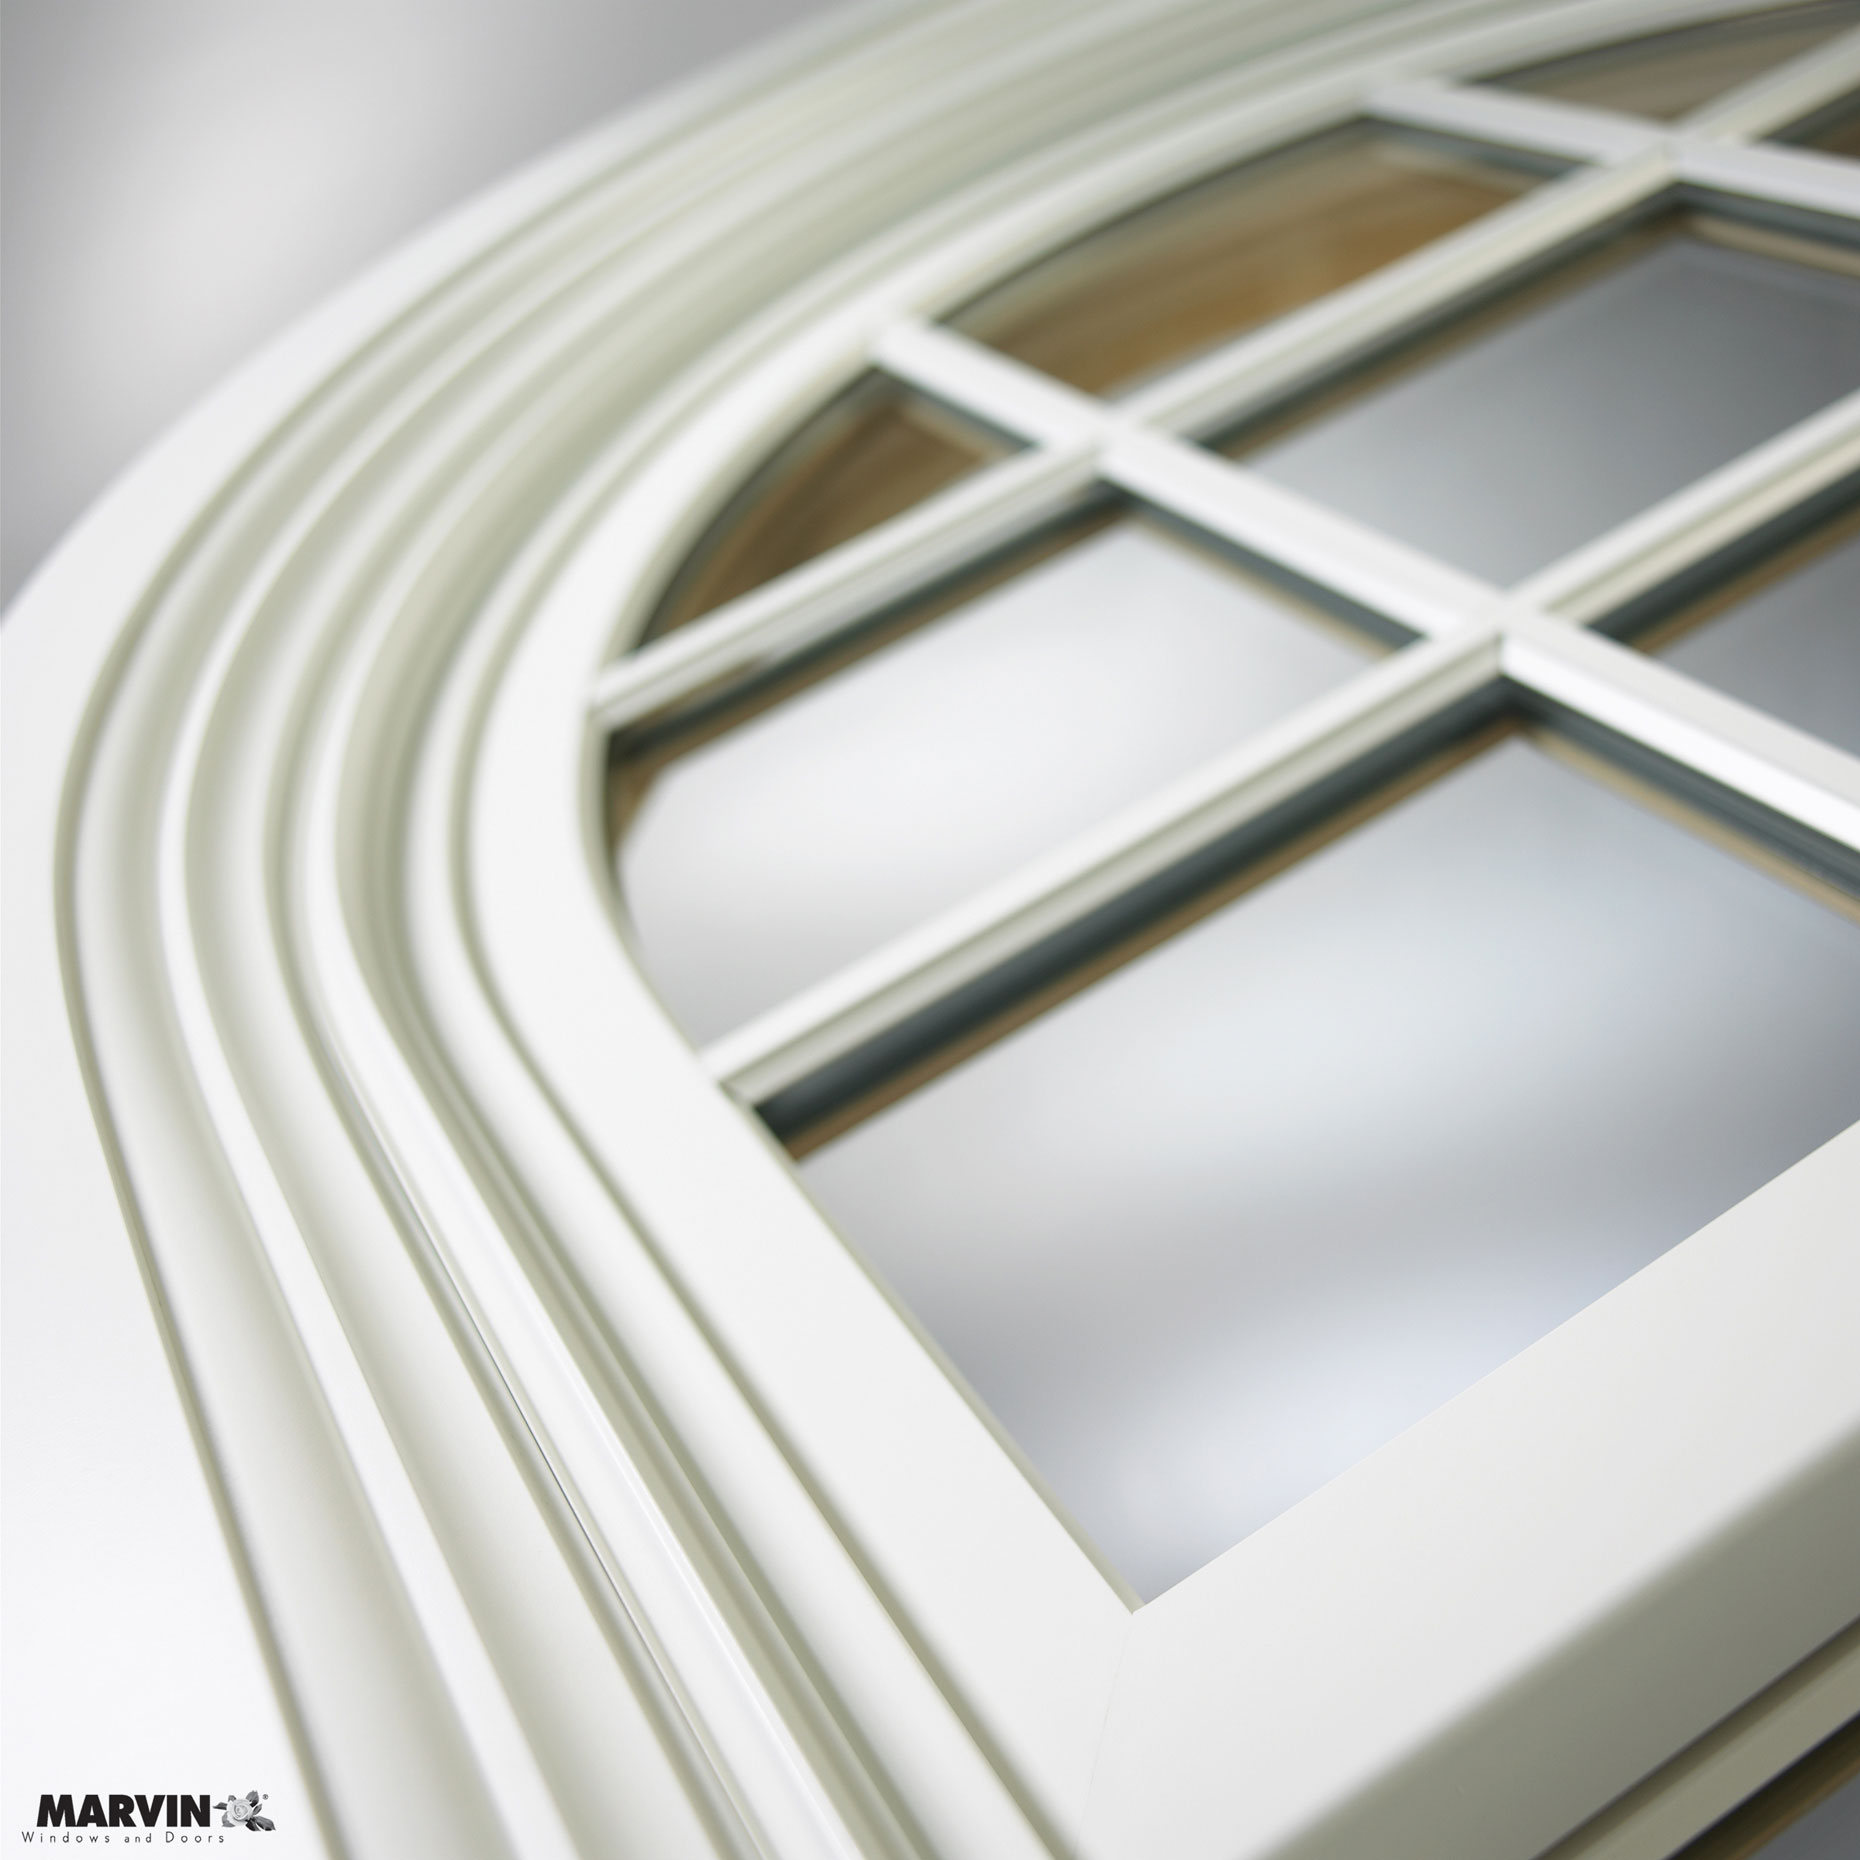 Clad arch window/Marvin/product photography